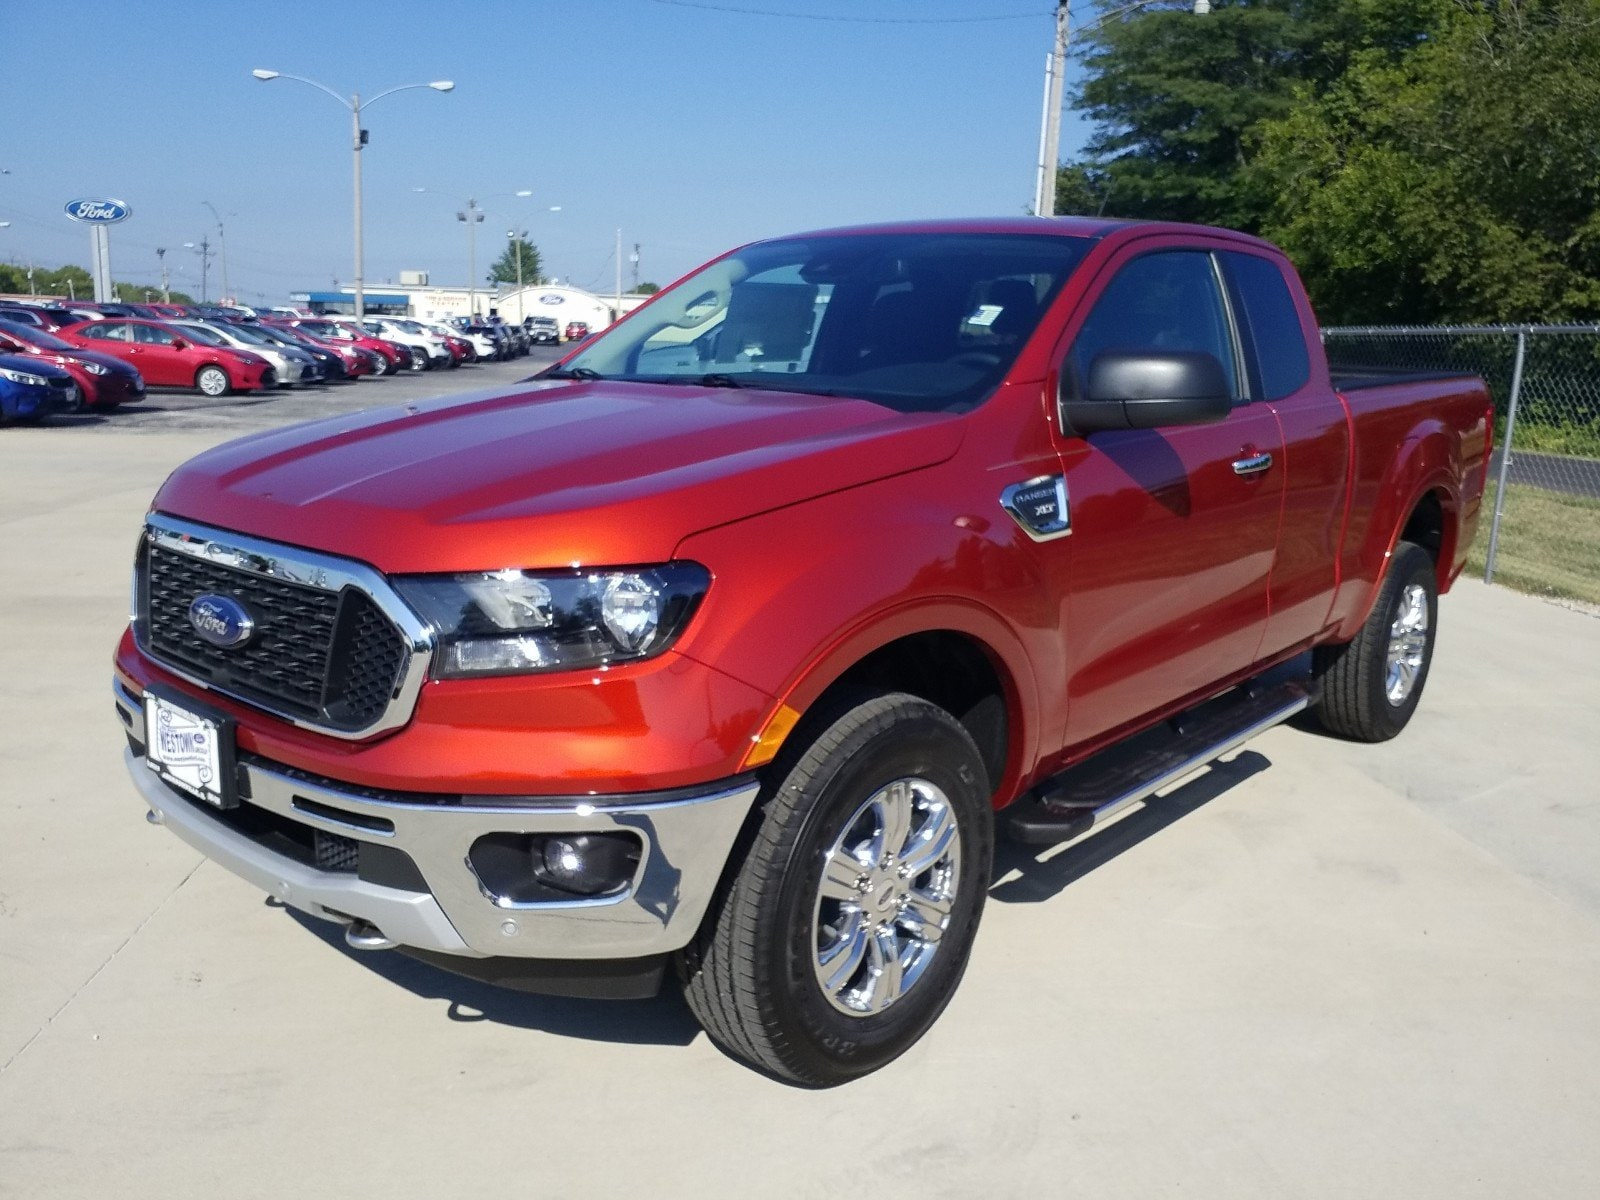 New 2019 Ford Ranger For Sale at Westown Ford   VIN